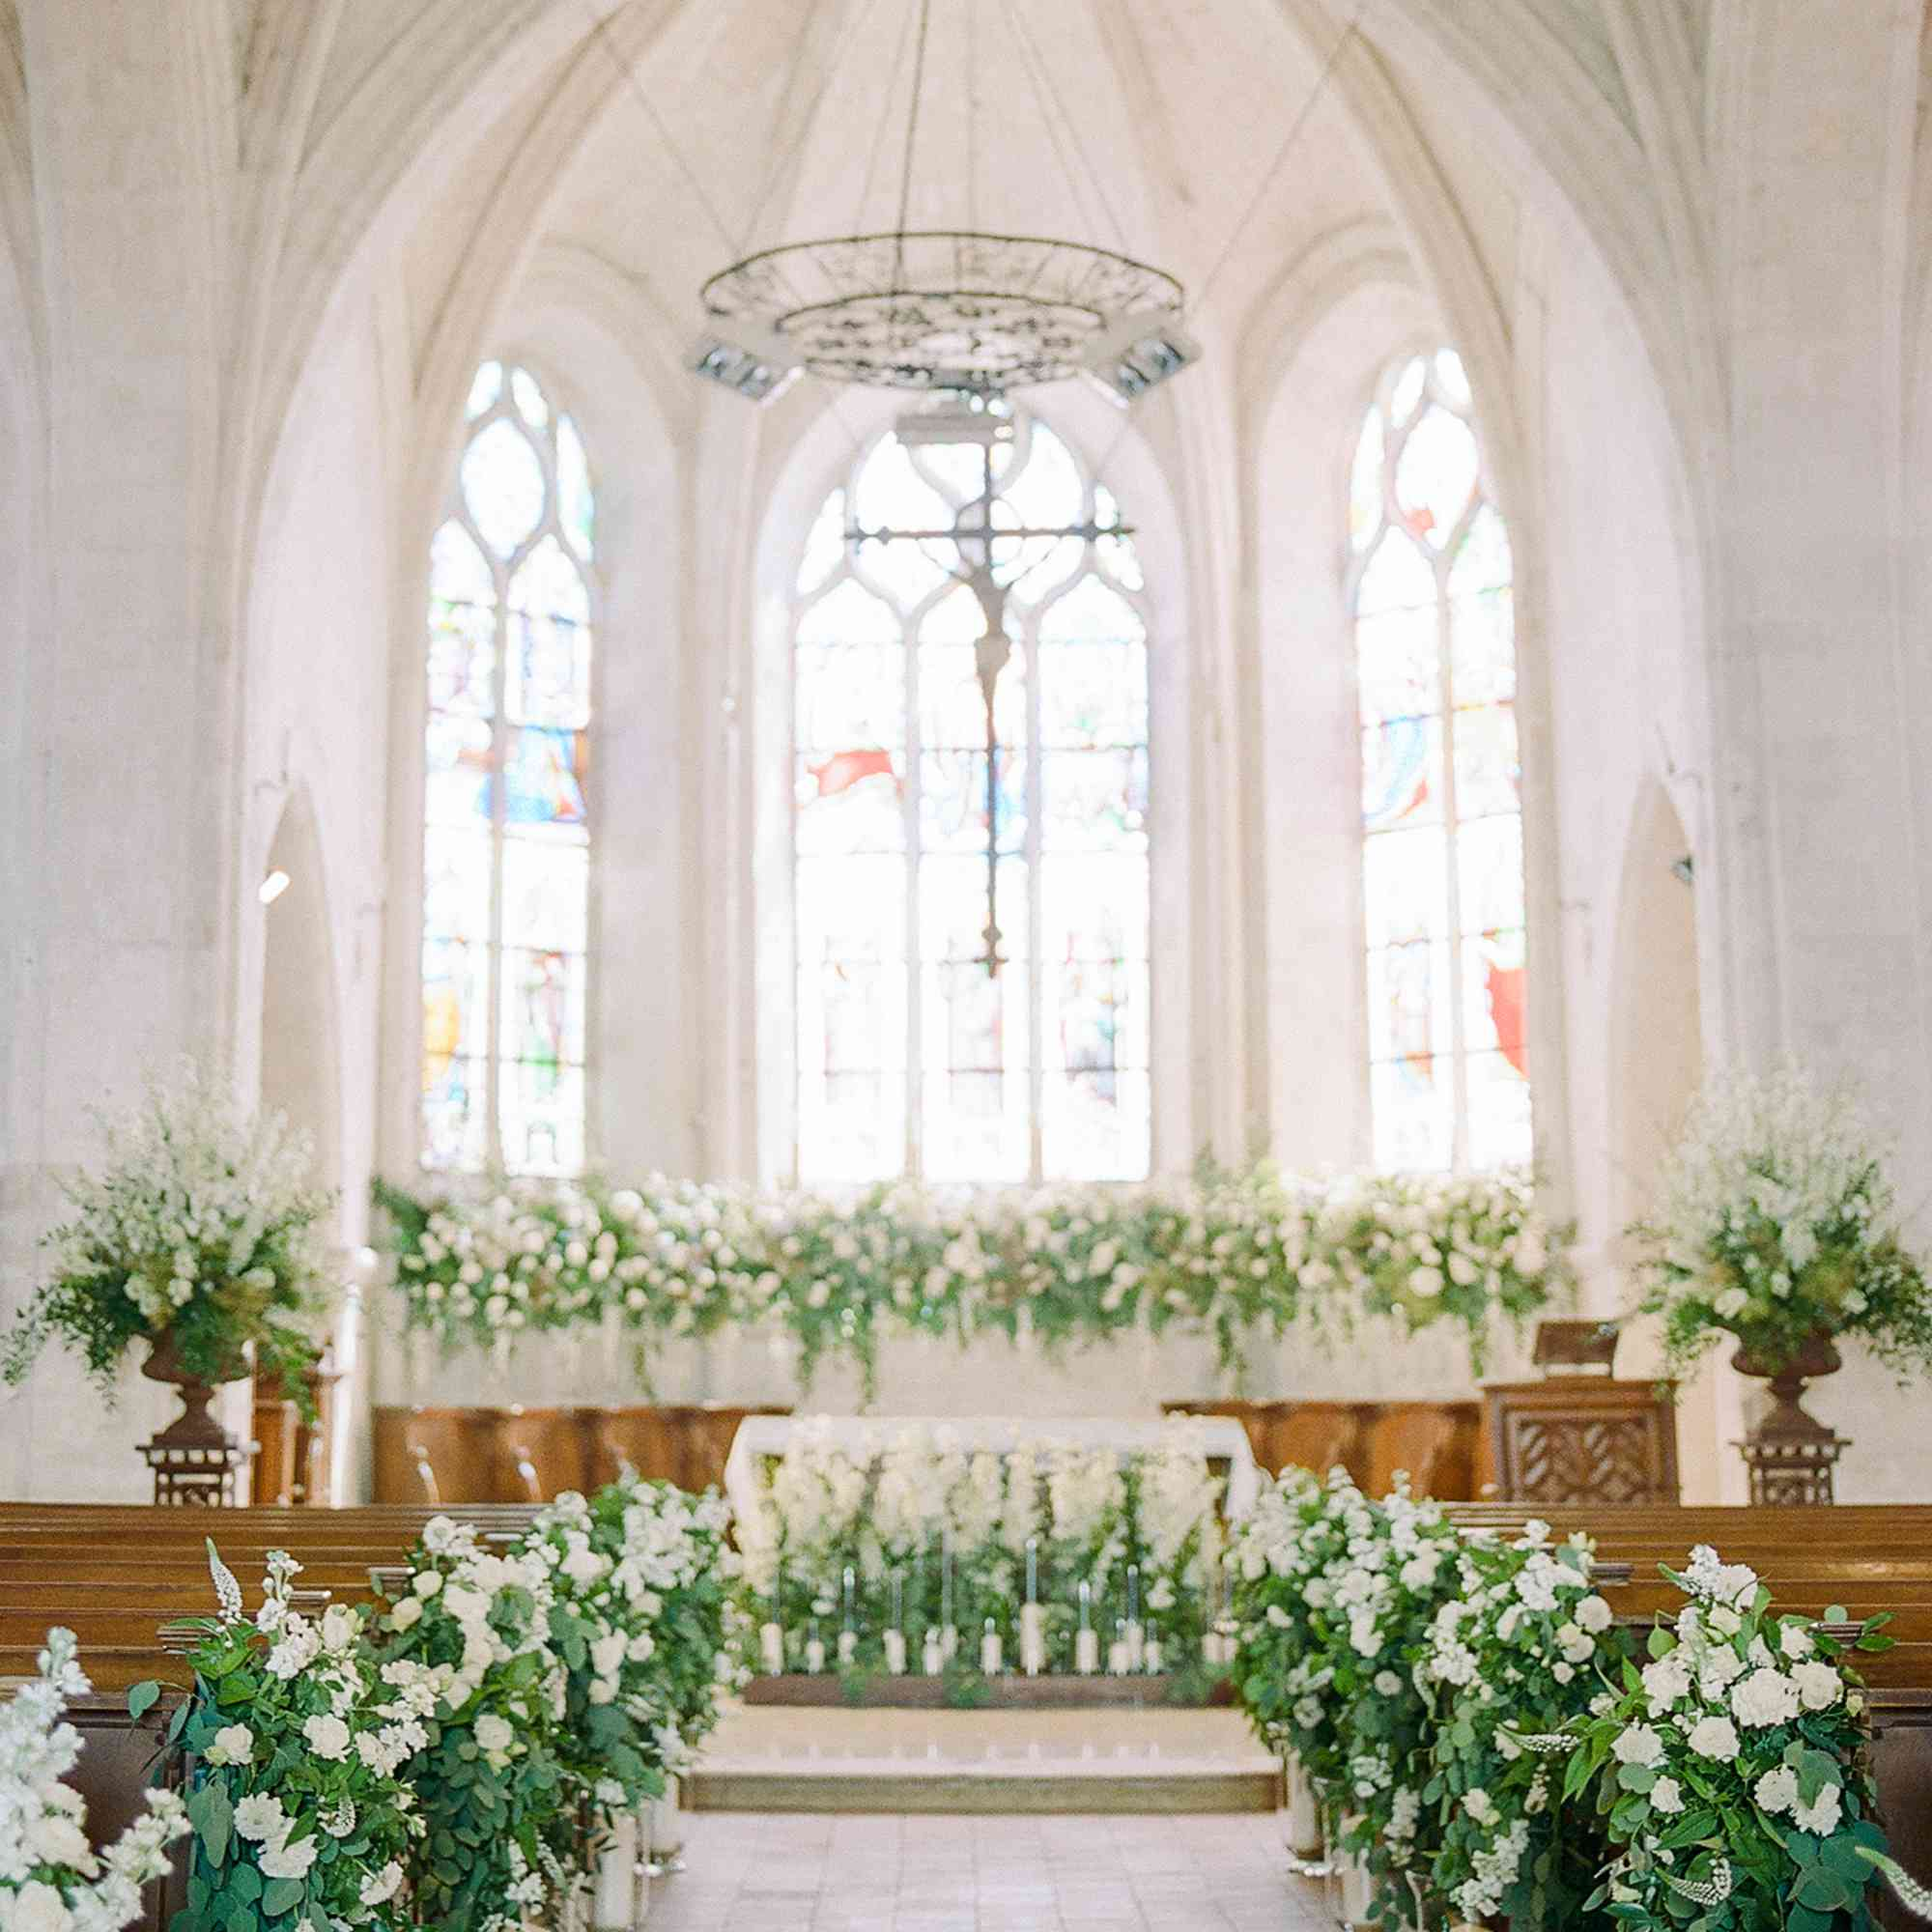 <p>Ceremony venue filled with florals</p><br><br>